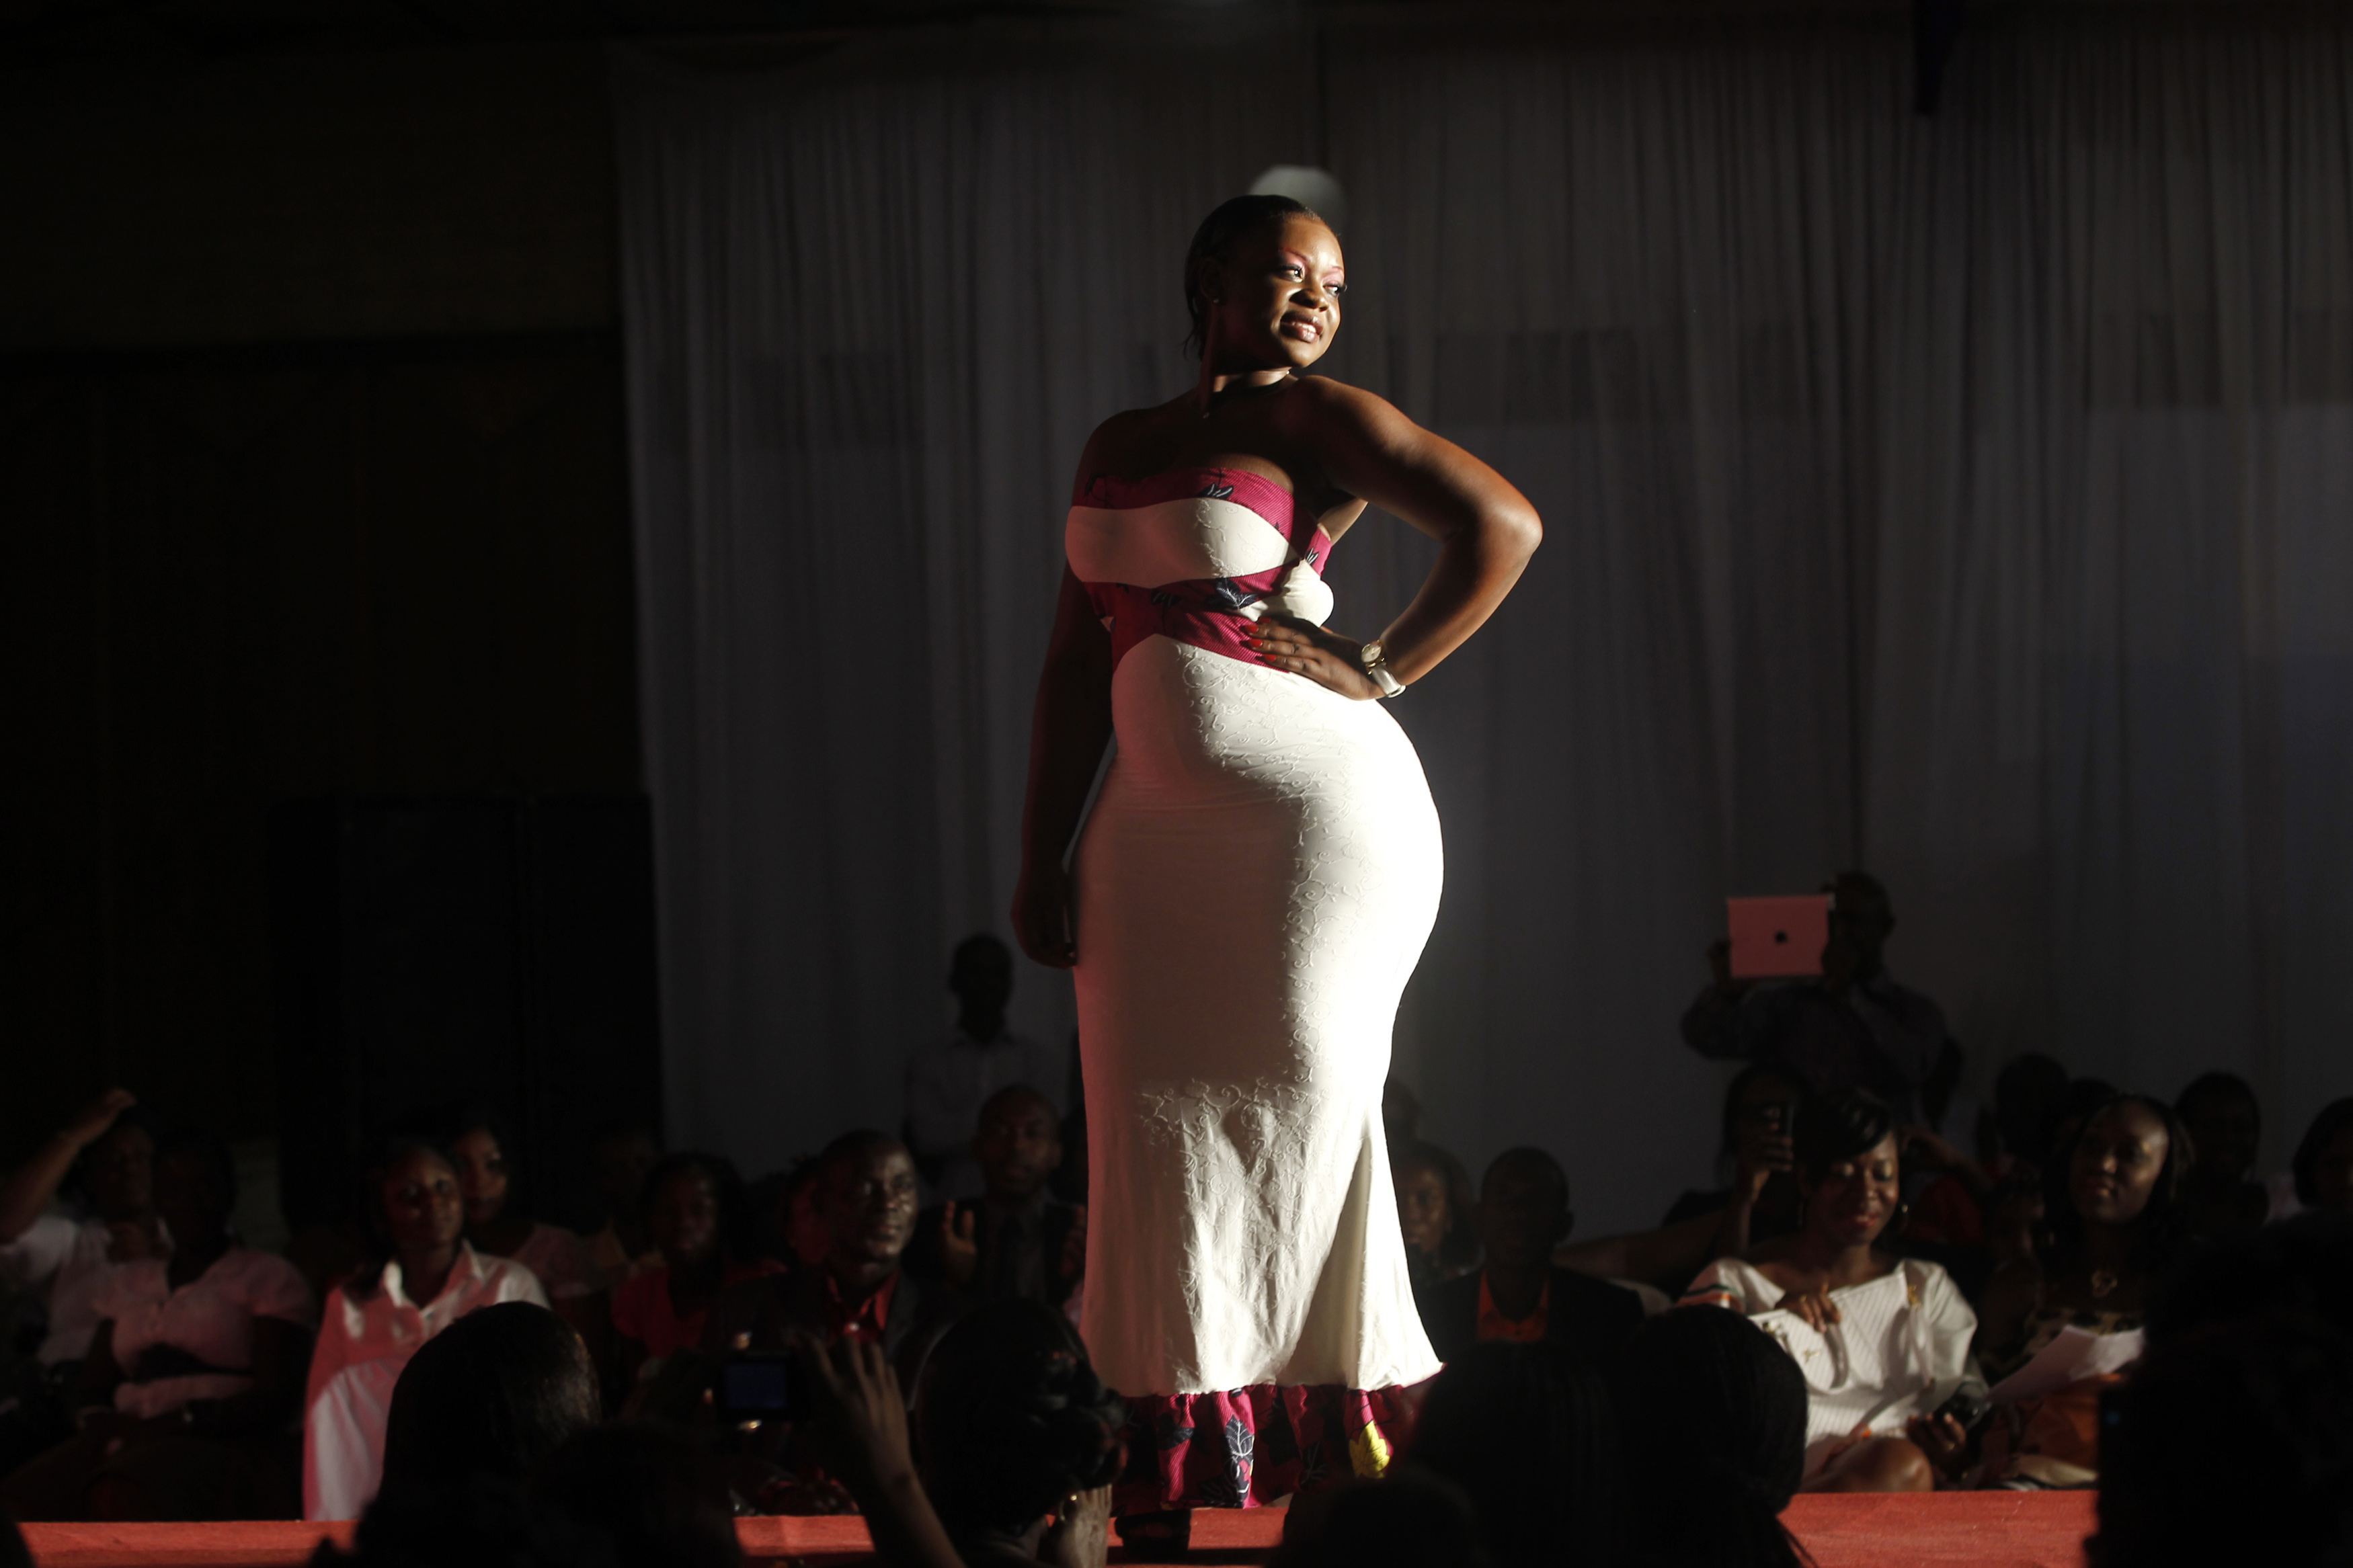 A model presents a creation during the Miss Rondement Belle fashion show in Abidjan October 30, 2013. The fashion show, which takes place till October 31 and has other activities such as a Miss Curvy contest, is aimed at emphasizing that curvy women are beautiful, according to organizers.